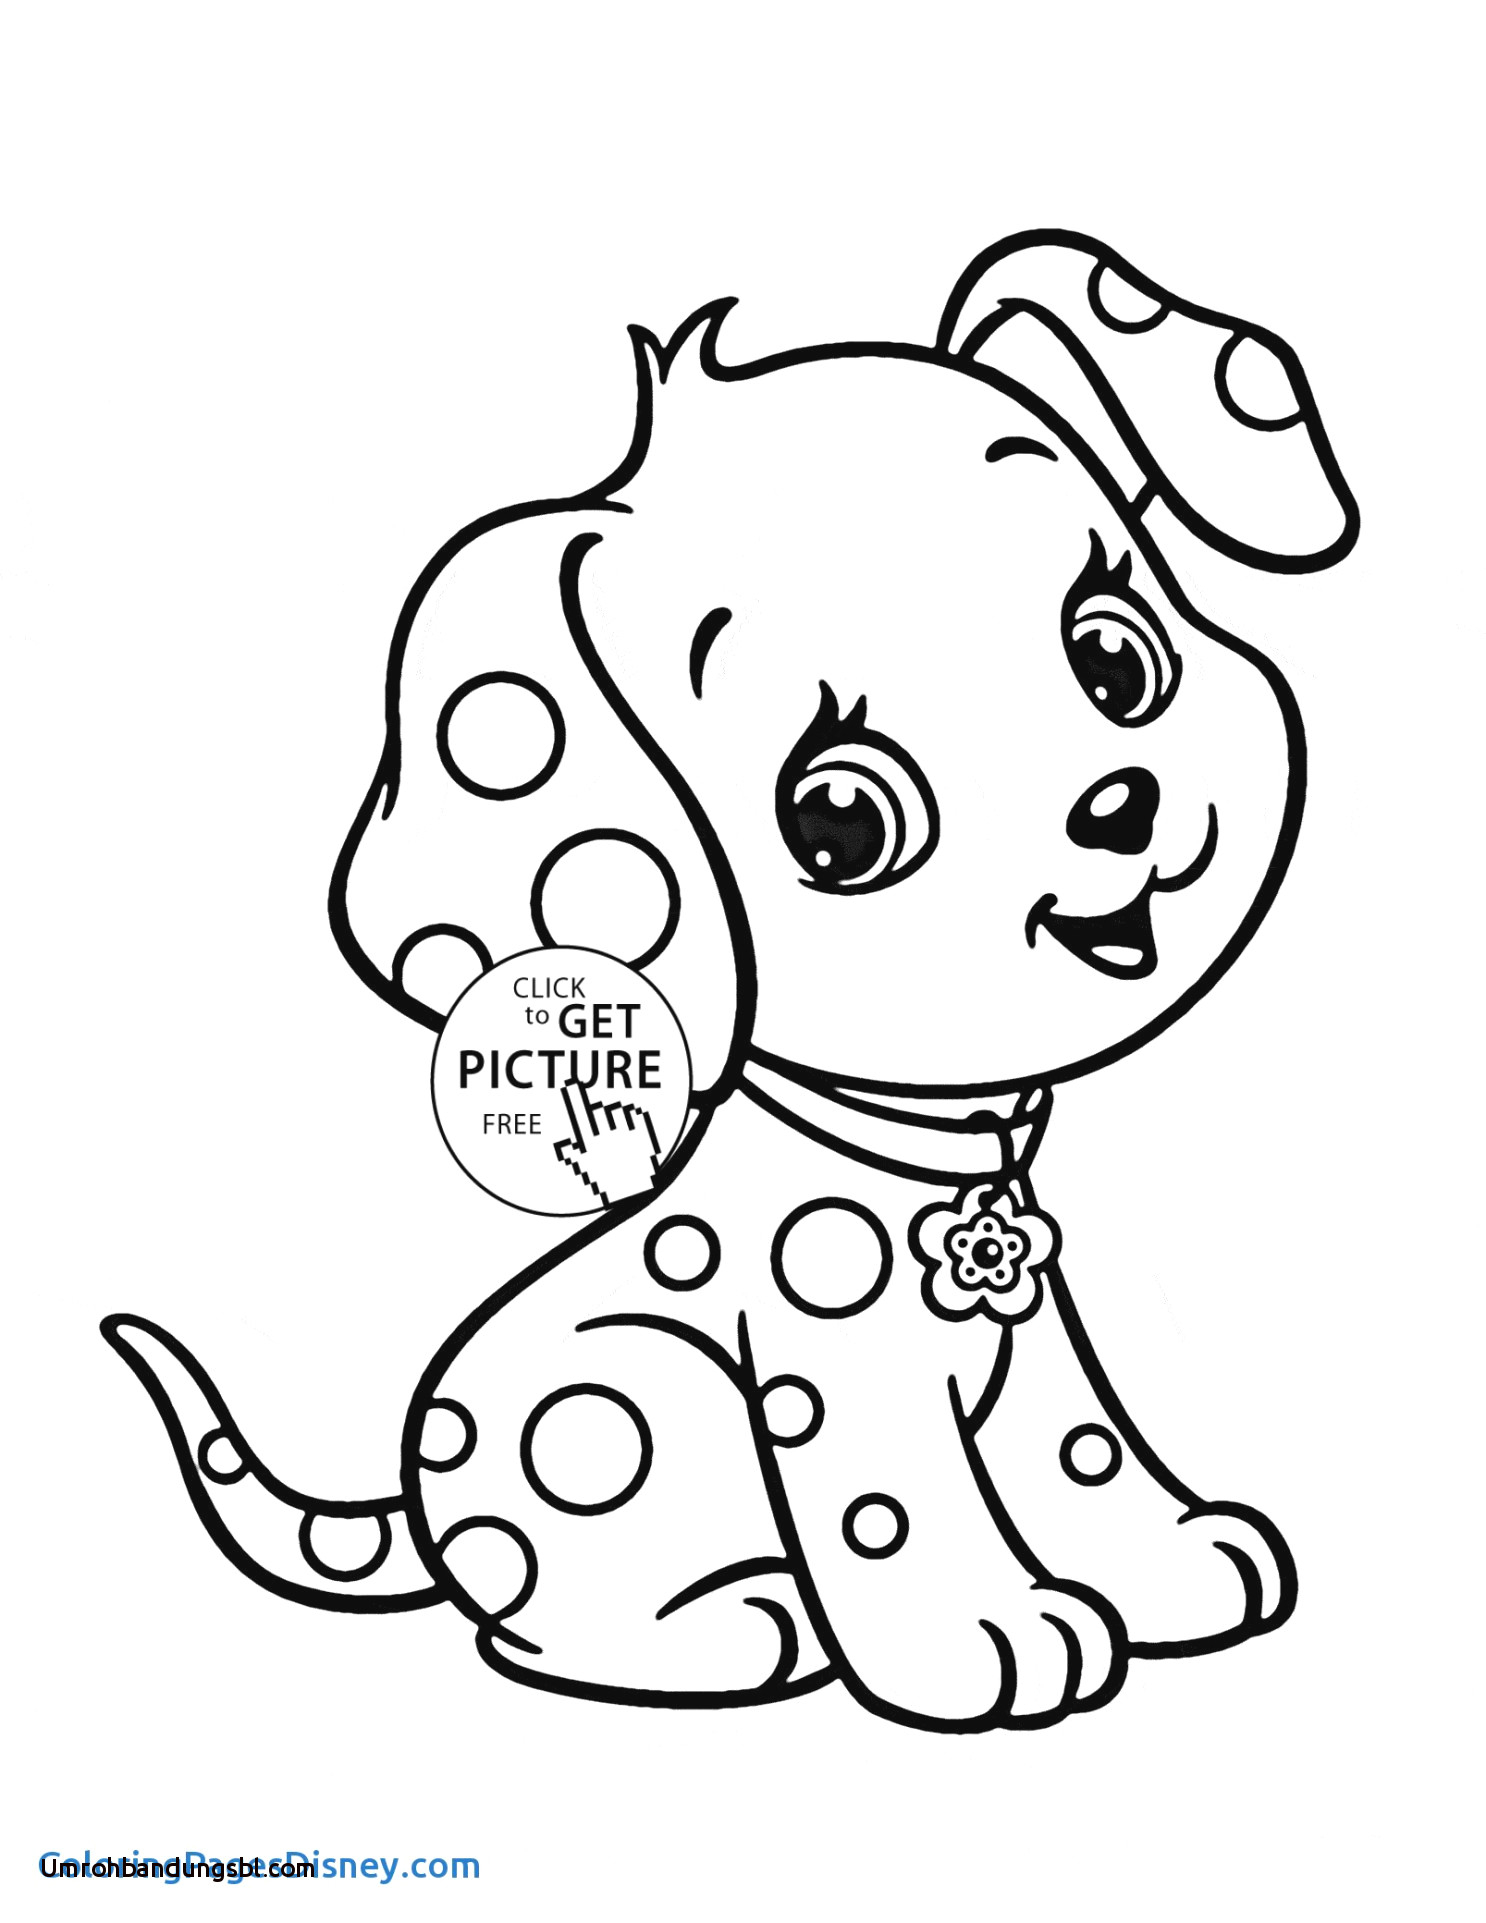 Coloring pages easter printable easter coloring book new coloring pages cartoons coloring pages dogs new